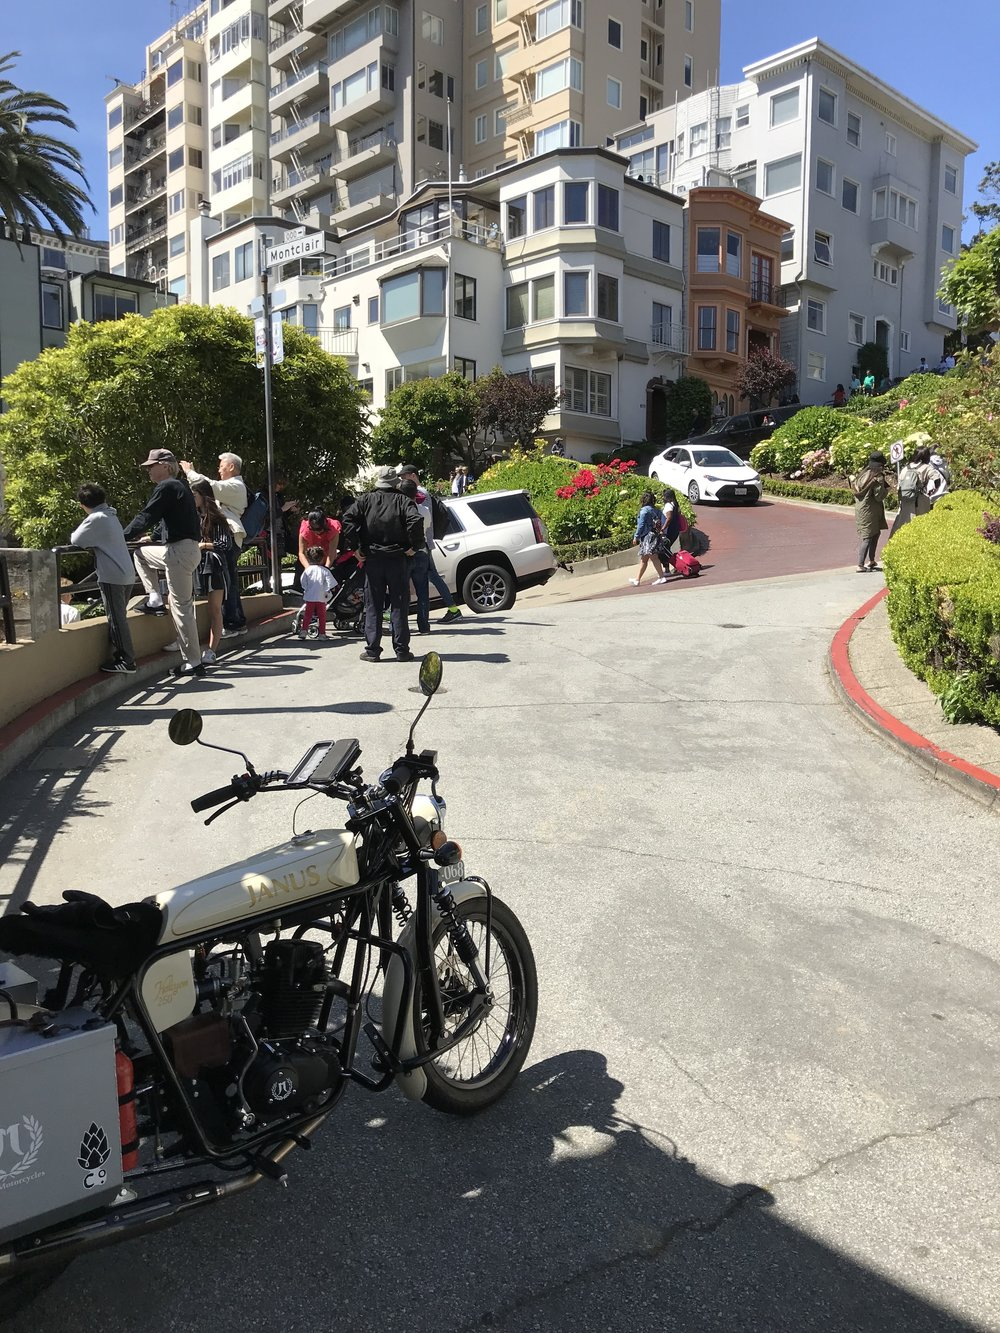 The Halcyon's small size made pulling off Lombard Street and sneaking through the lines of tourists for a picture a breeze.